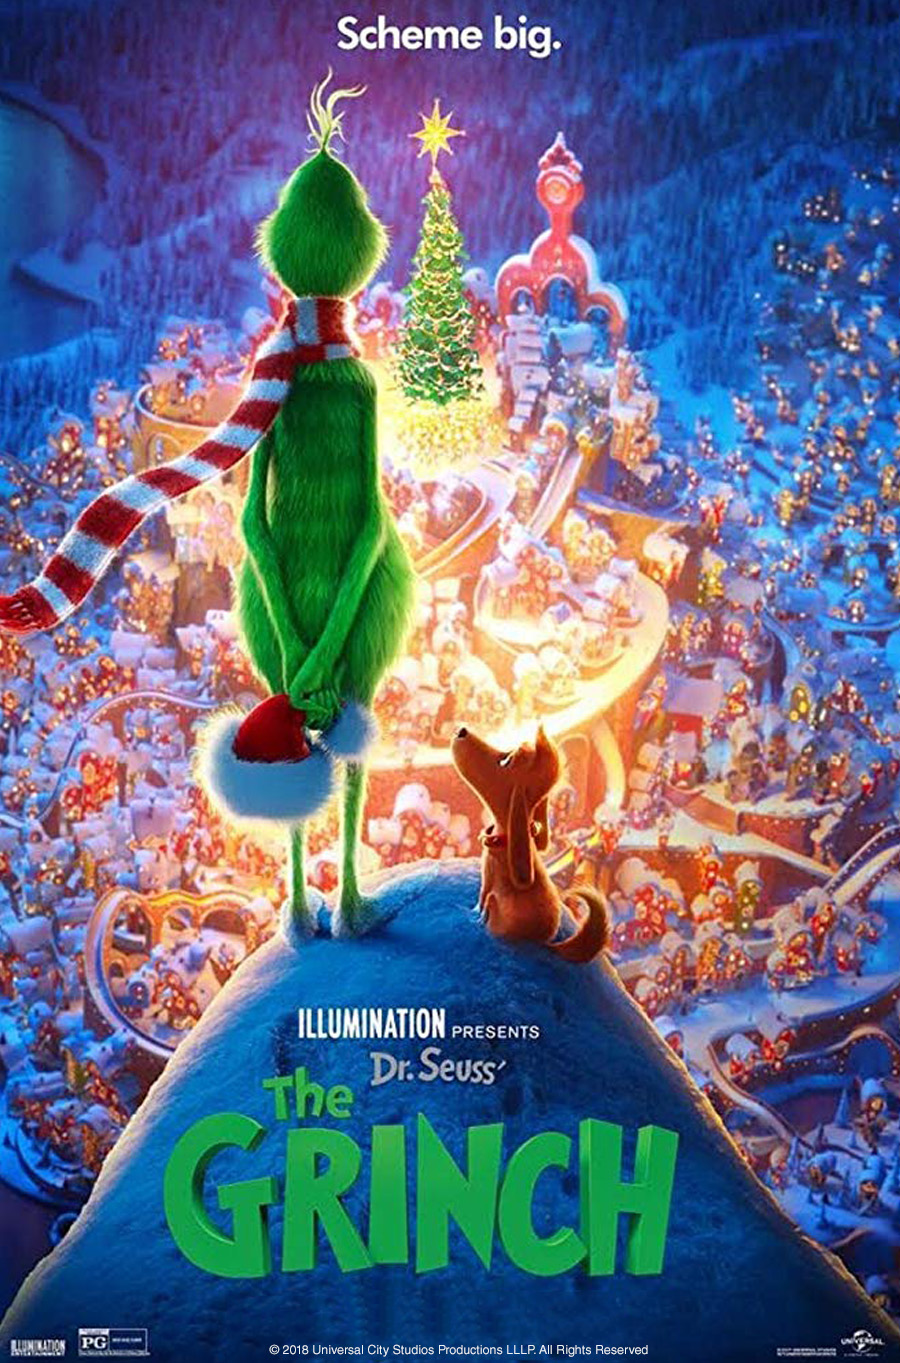 Image of Dr. Seuss' The Grinch Movie Poster